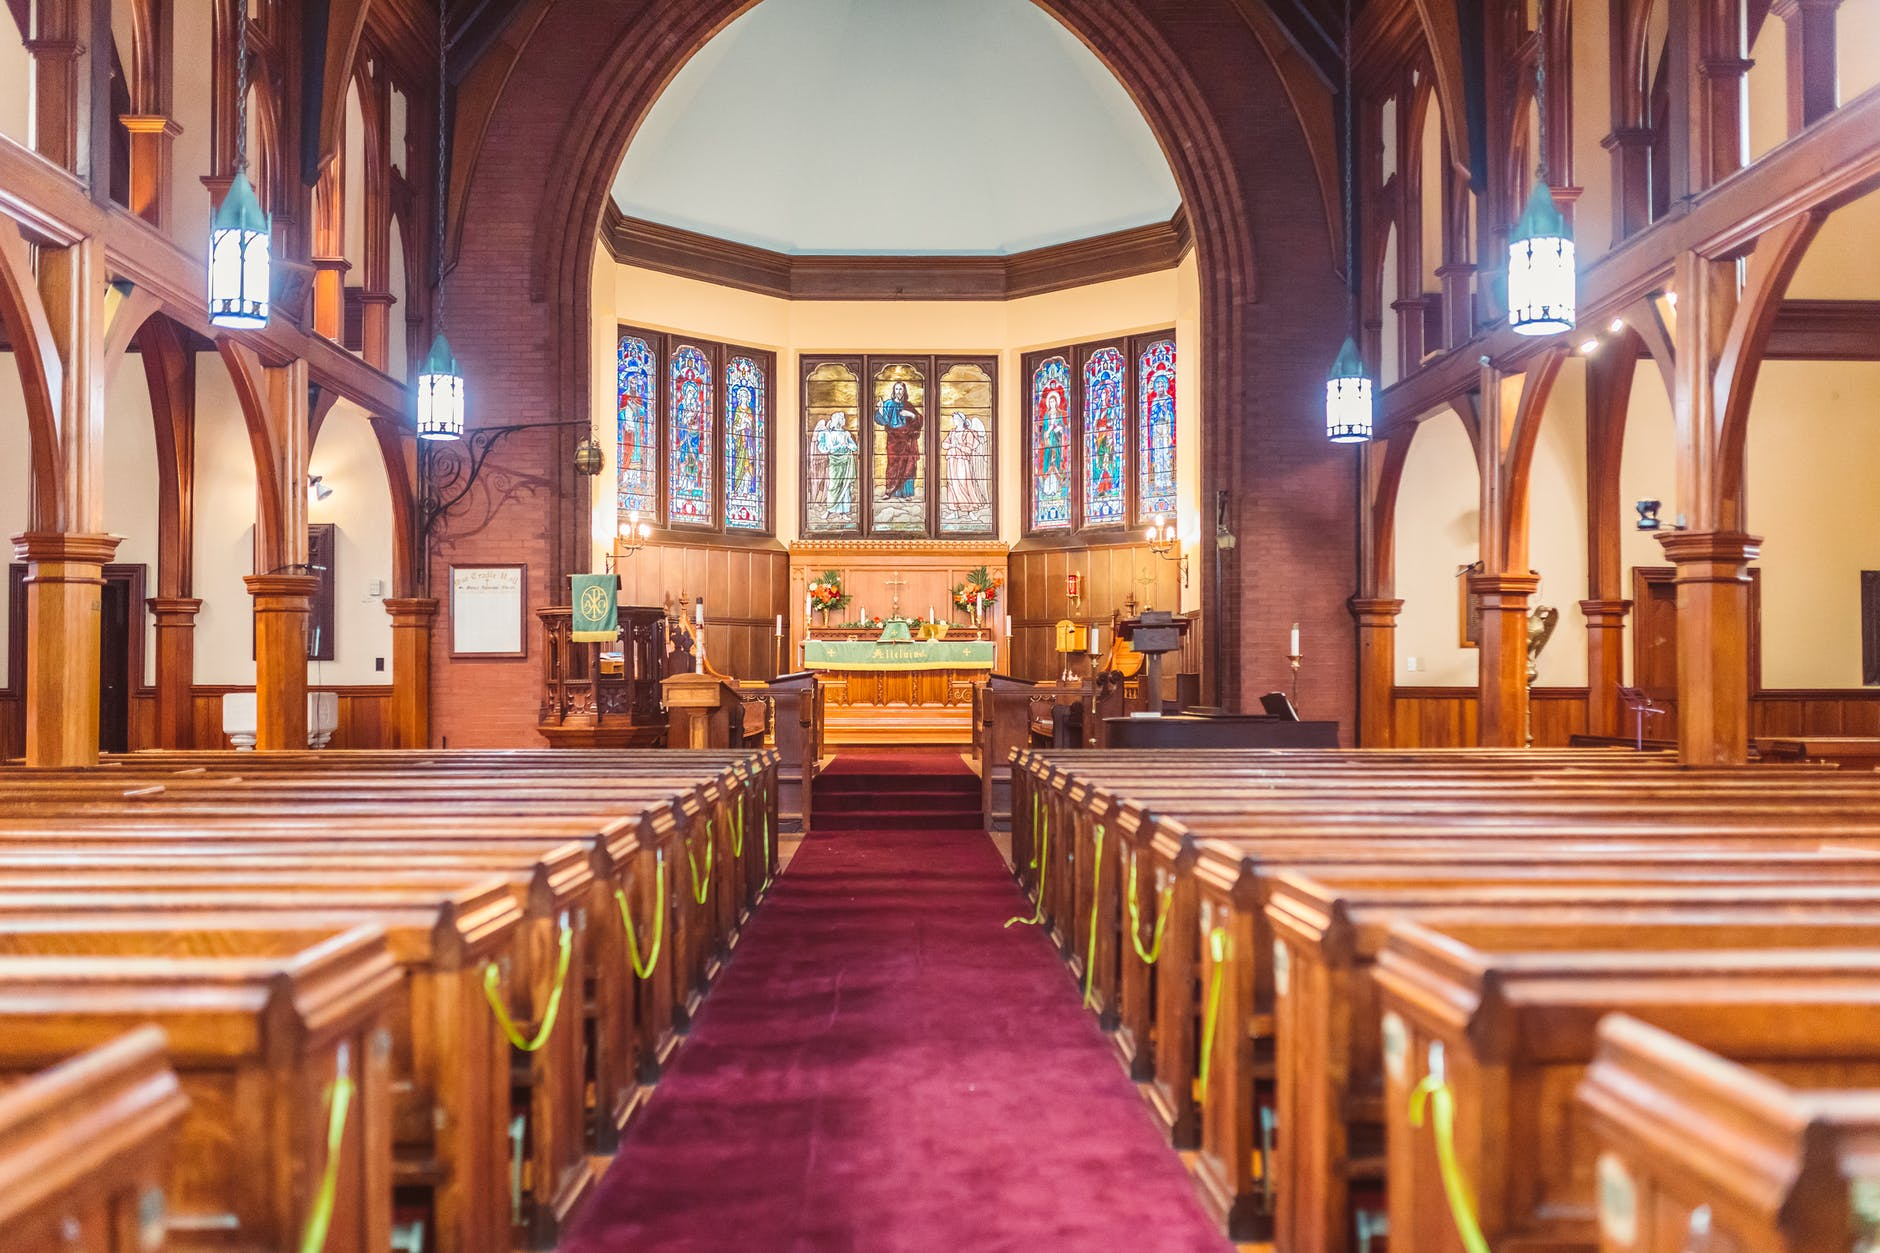 SEATED IN THE SANCTUARY